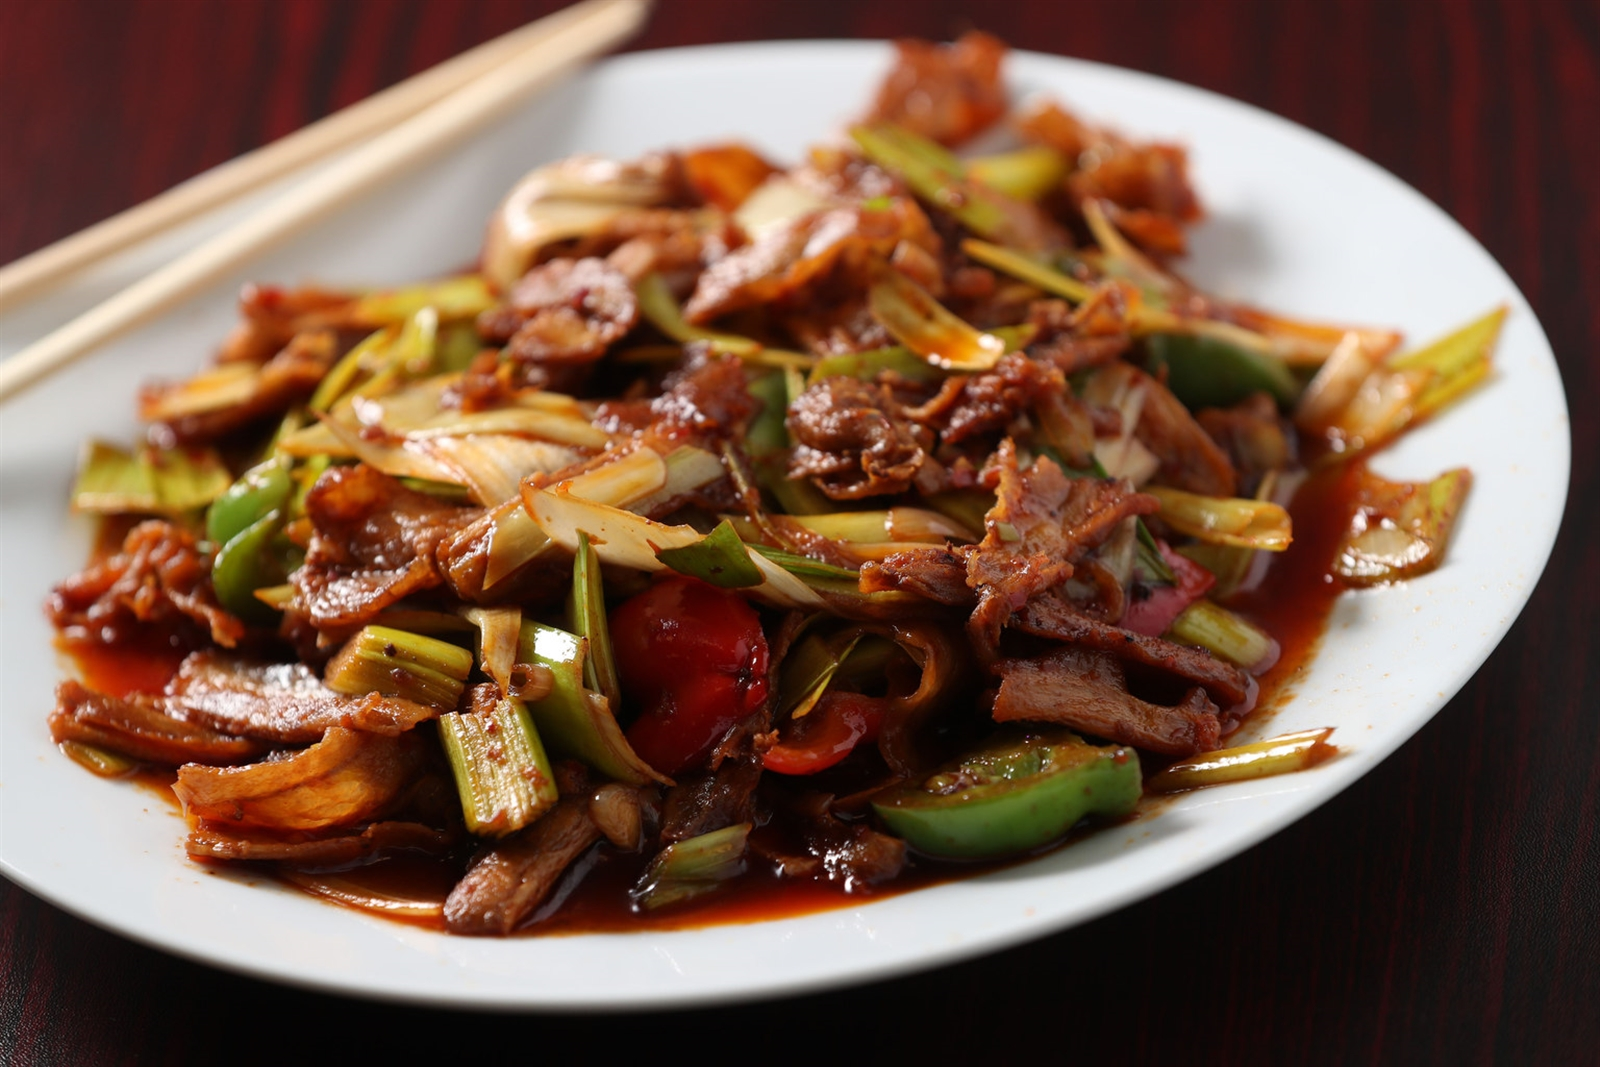 The double-cooked pork is made with stir-fry pork aith leeks, green peppers and red peppers with Sichuan spicy sauce.